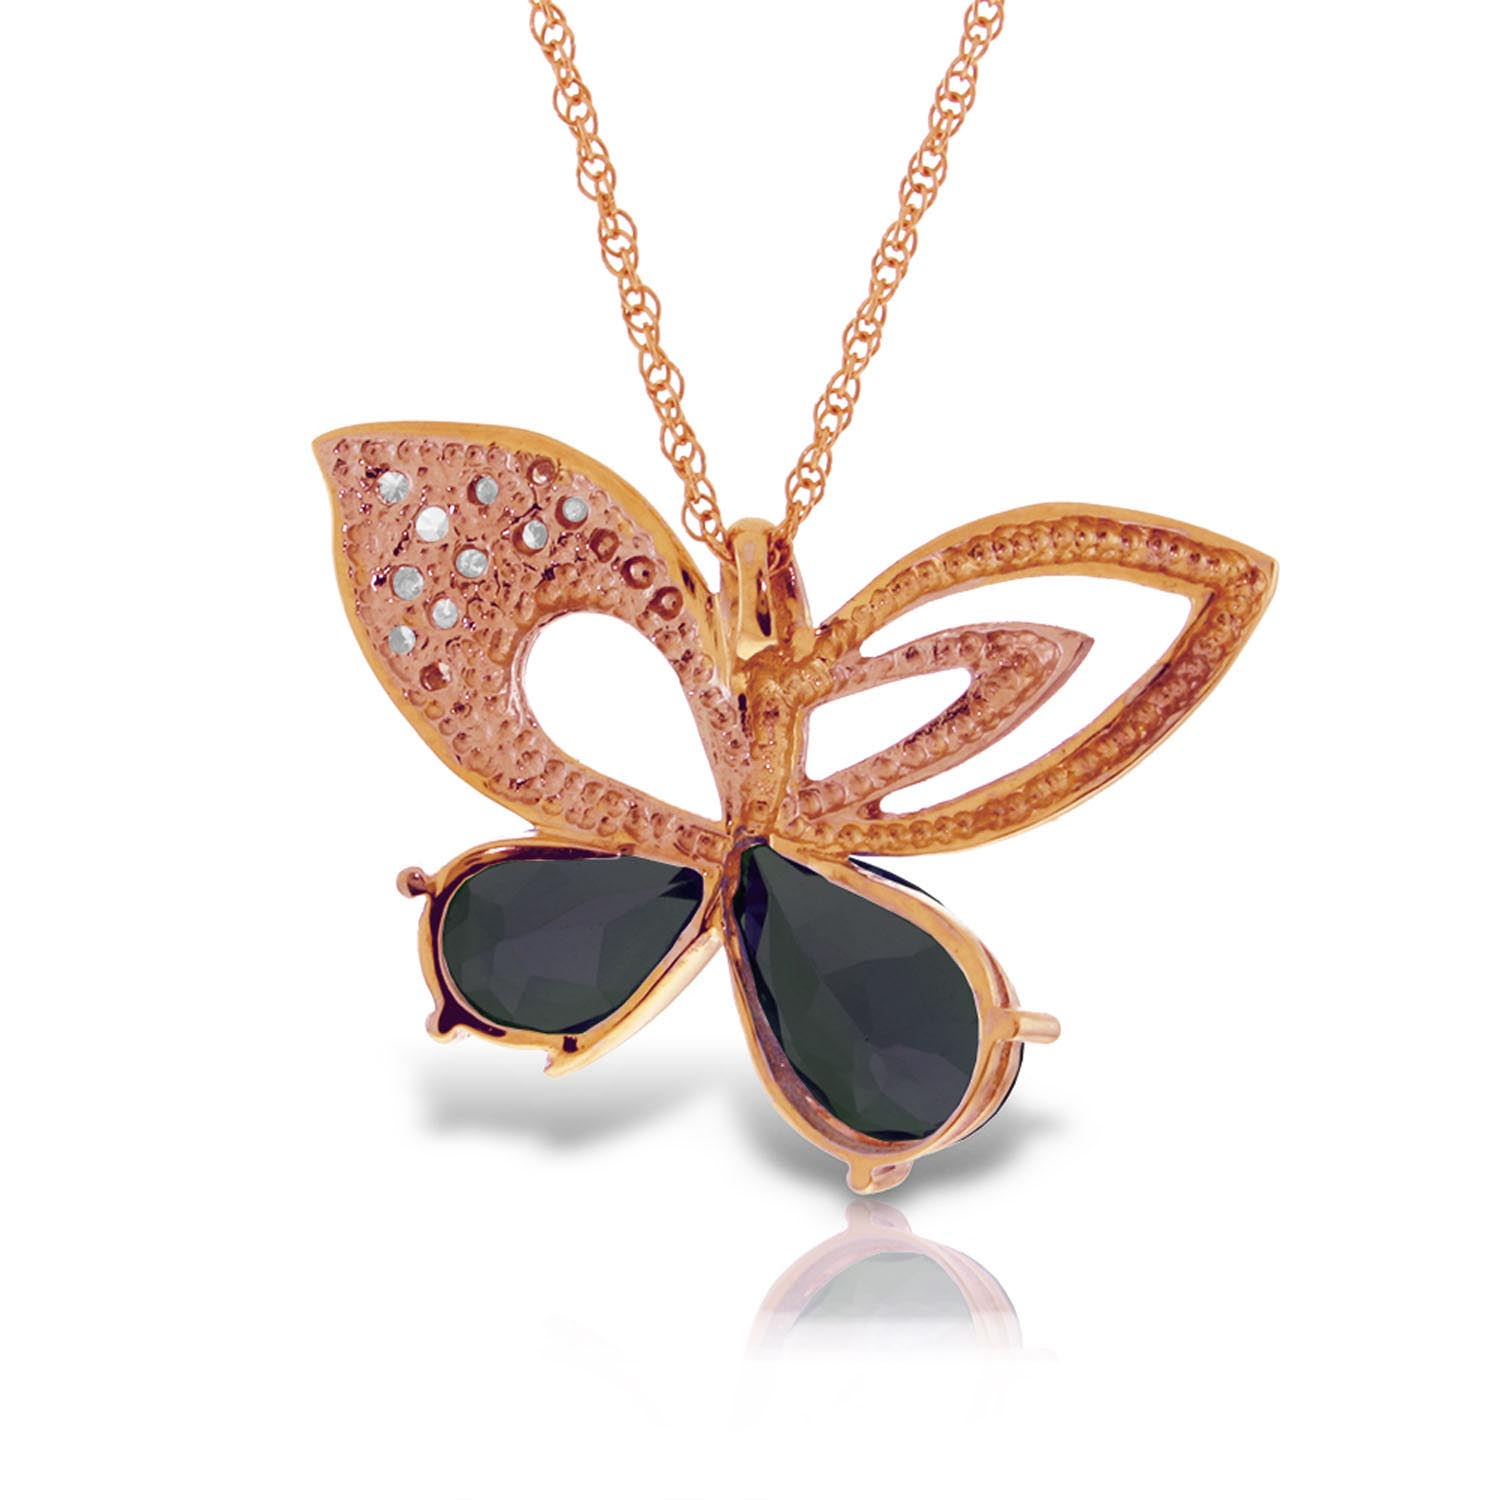 Sapphire and Diamond Butterfly Pendant Necklace 4.2ctw in 14K Rose Gold